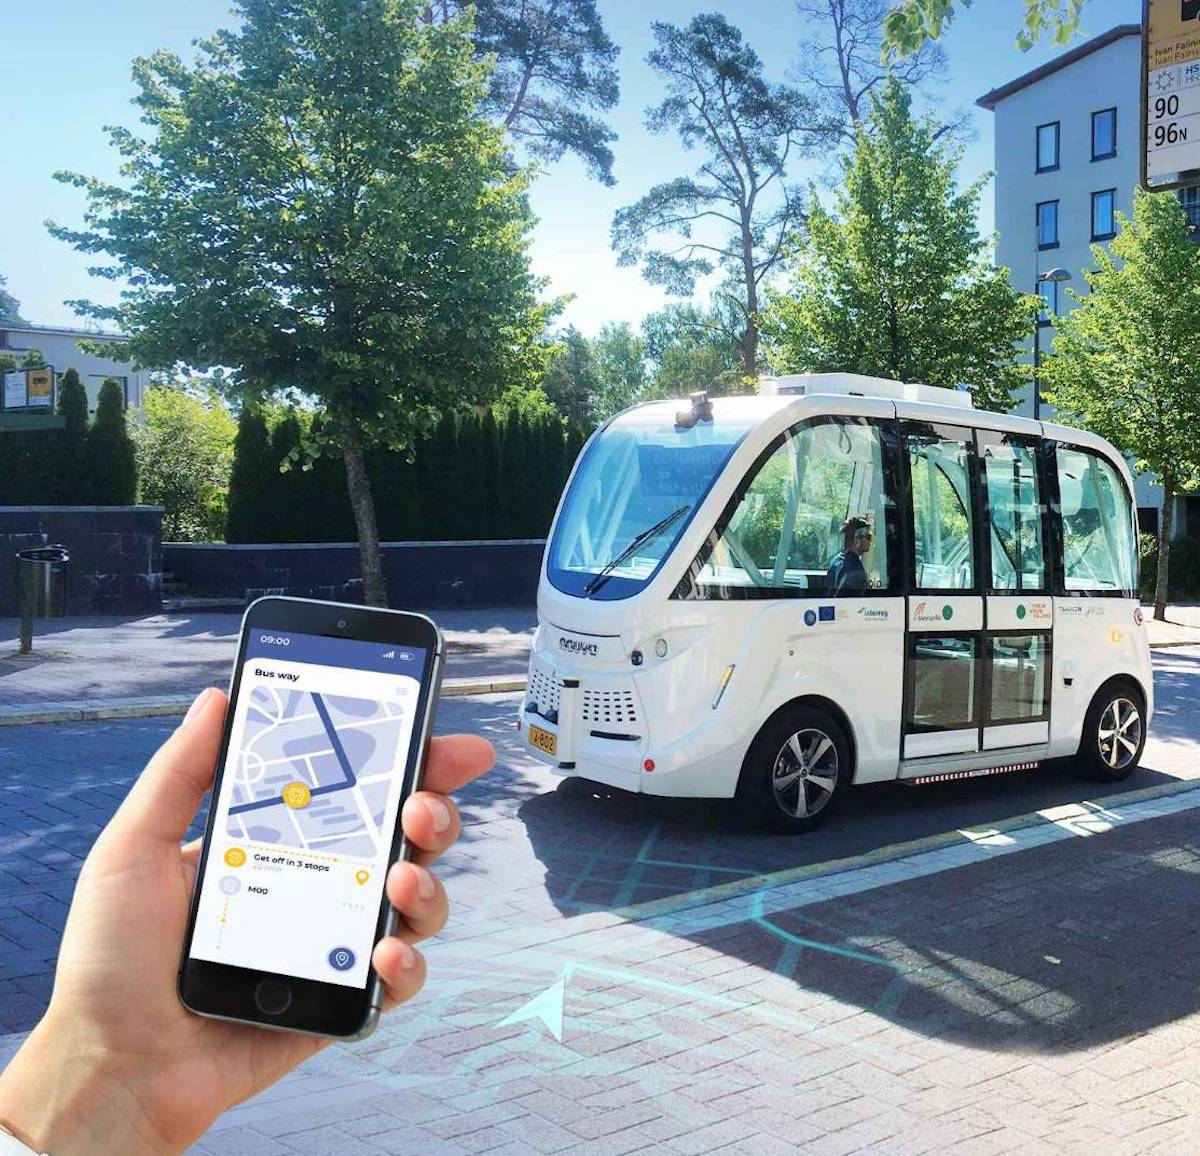 The project adopts autonomous buses developed by Qualcomm.